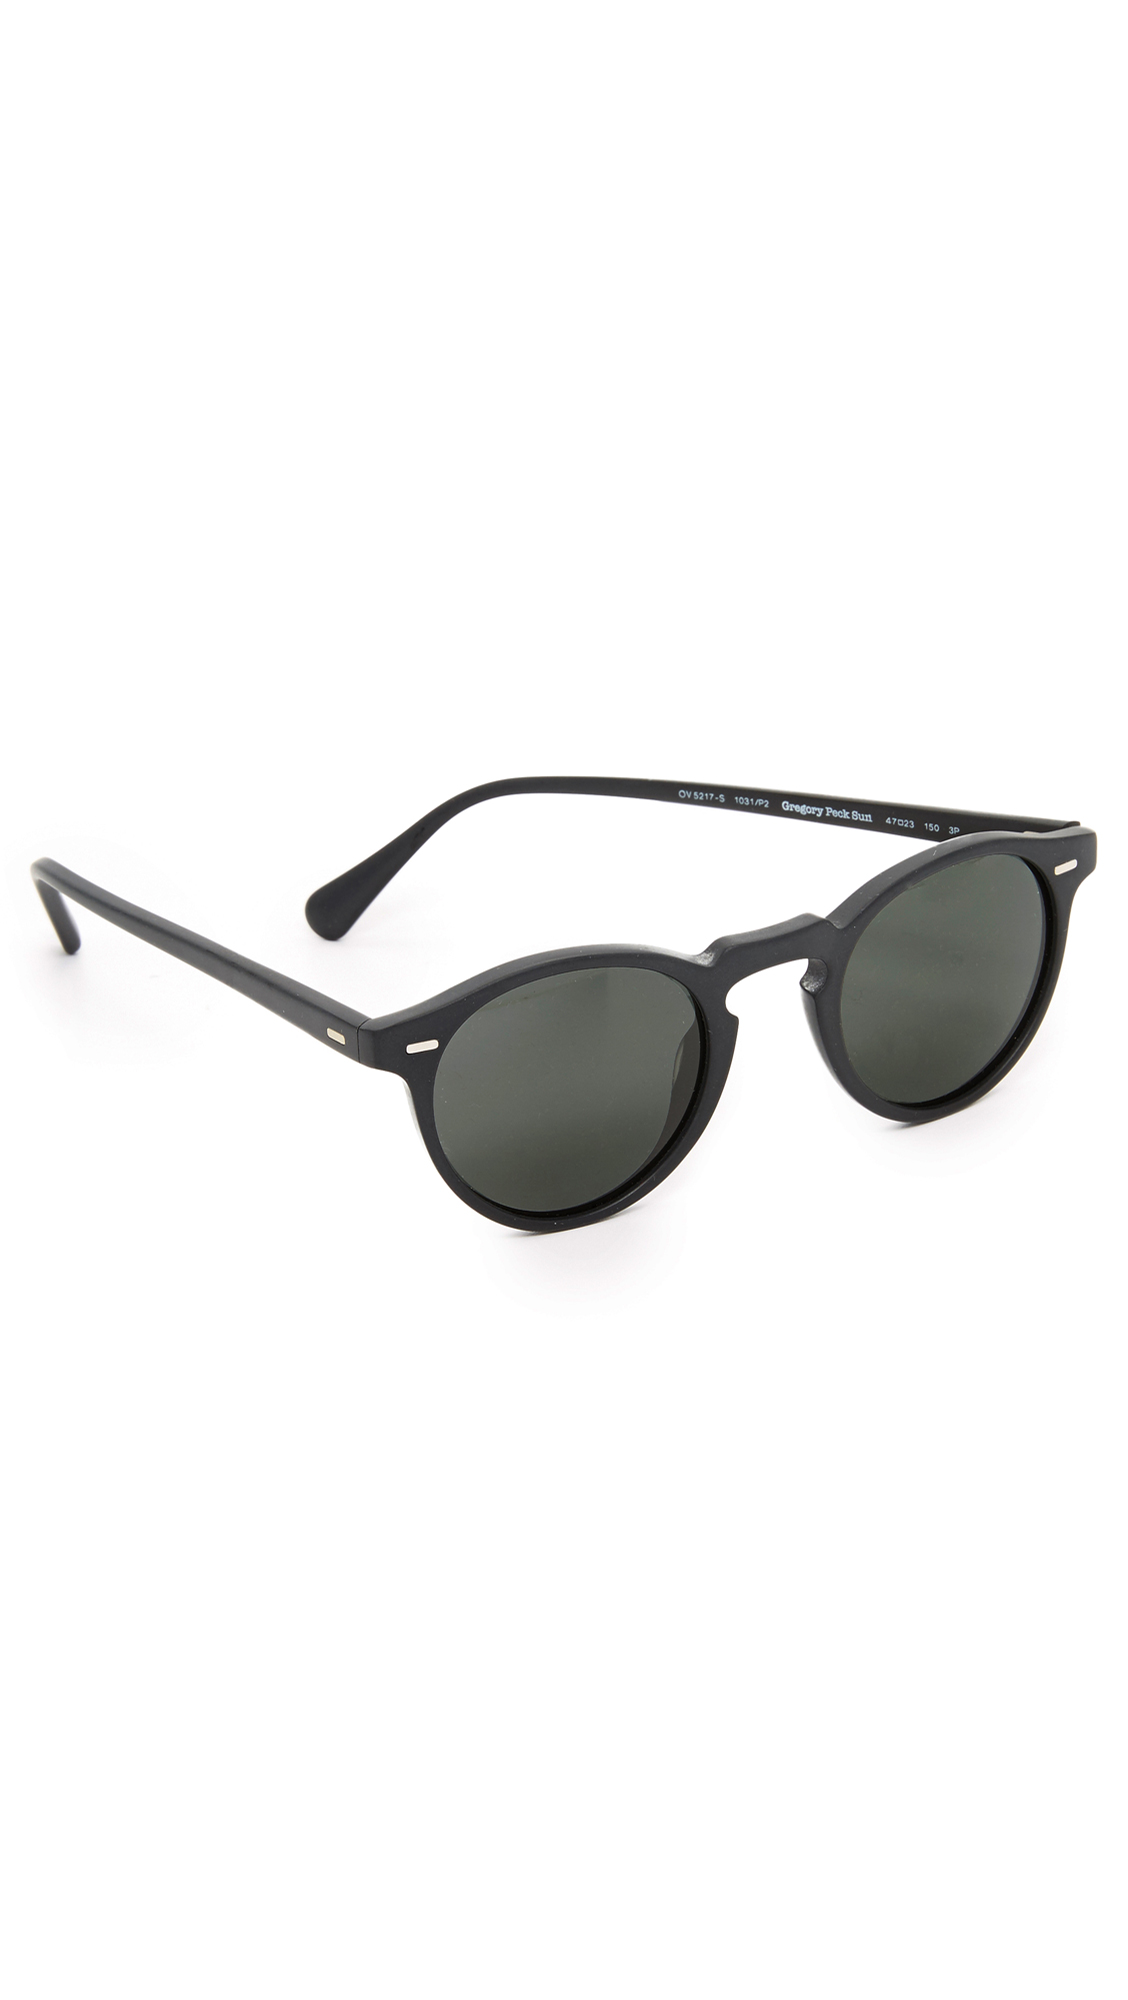 faef4497cba8 OLIVER PEOPLES GREGORY PECK POLARIZED SUNGLASSES